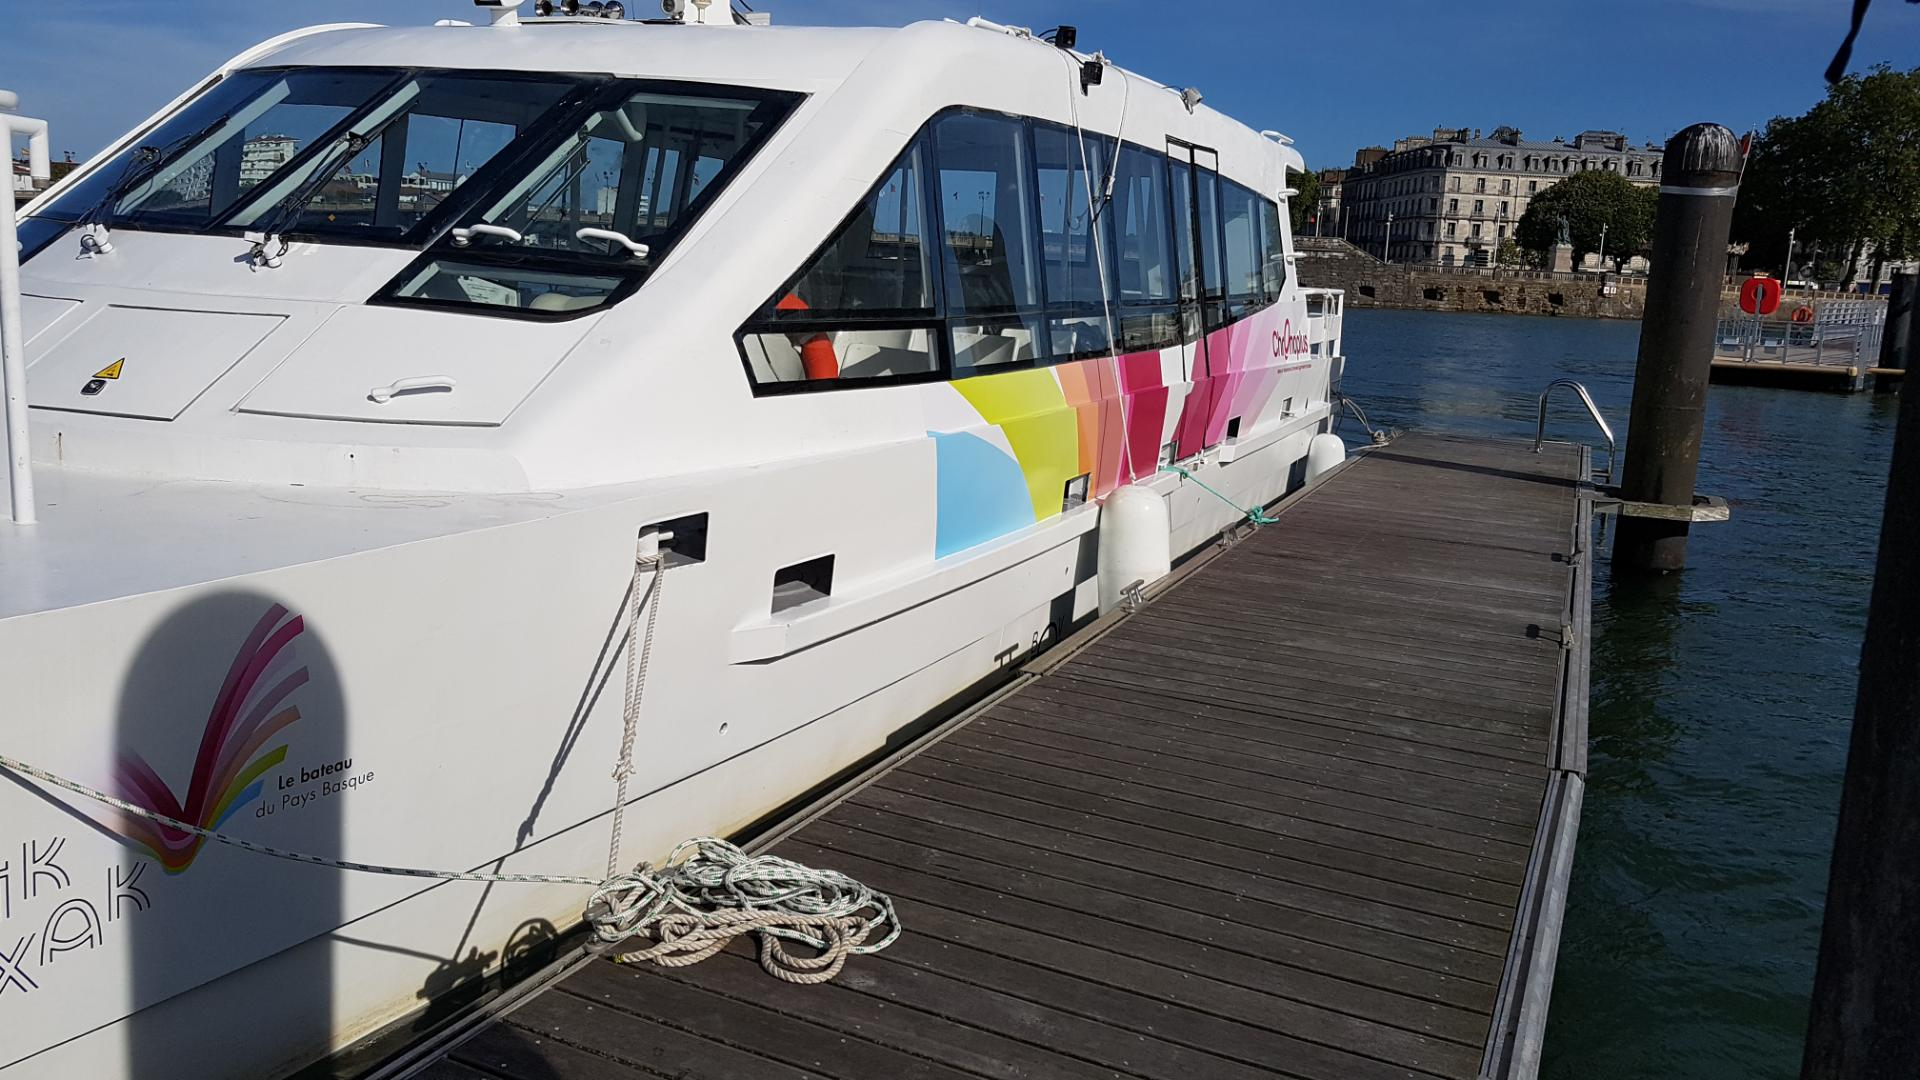 Wrapping Covering Bateau Capbreton – Hendaye – Biarritz – Biscarrosse – Arcachon – Sete – Narbonne – Collioure – Argeles sur Mer – Jifmar – Offshore -impression- pose